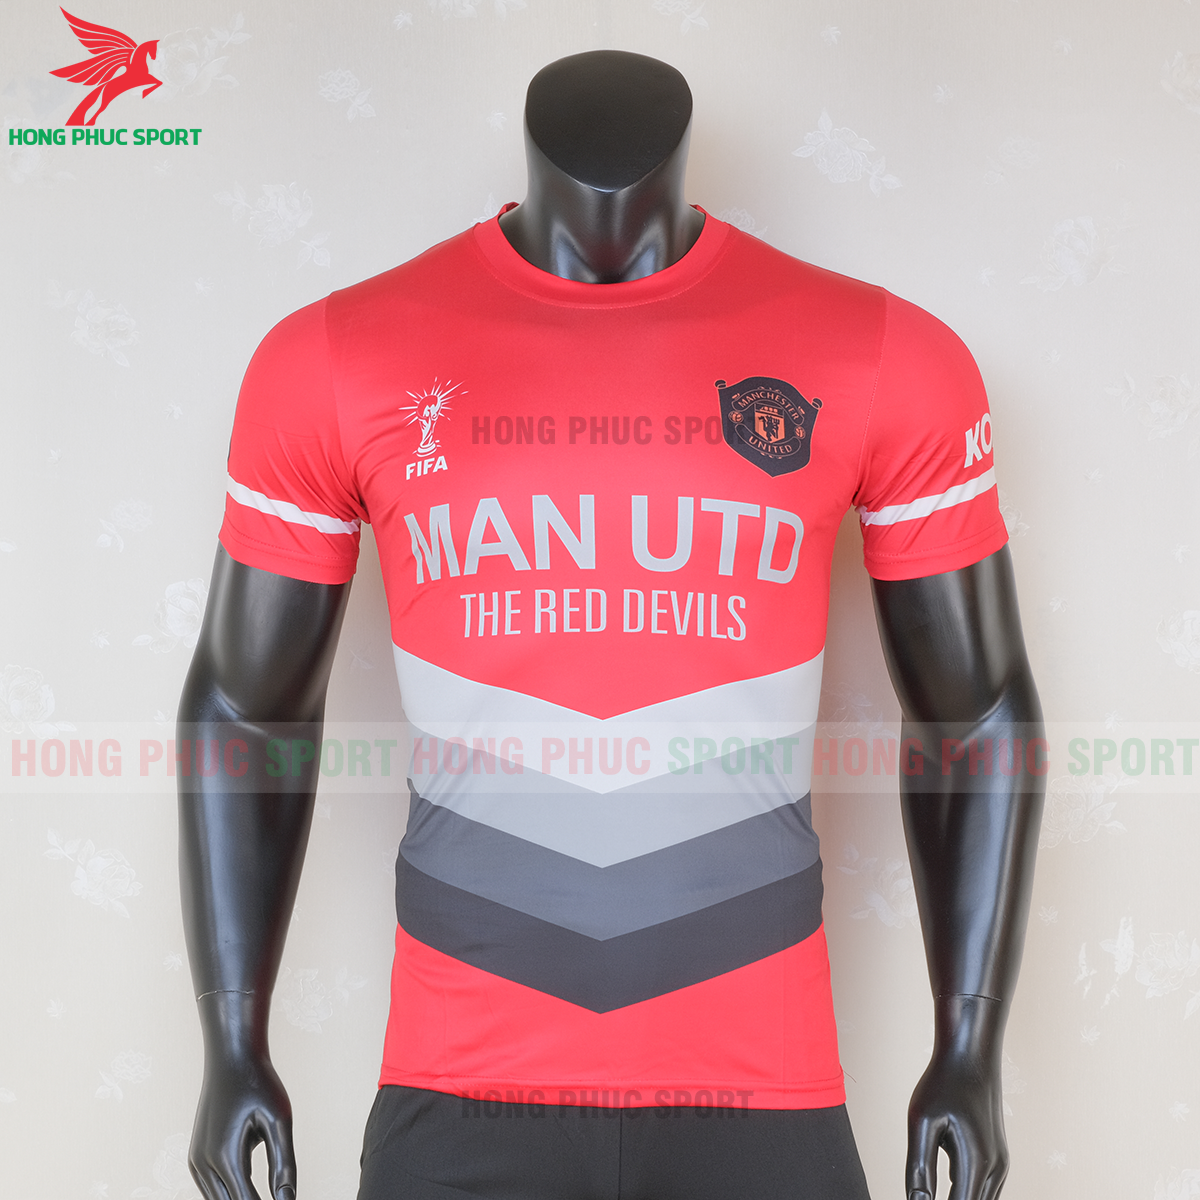 https://cdn.hongphucsport.com/unsafe/s4.shopbay.vn/files/285/ao-bong-da-manchester-united-2020-2021-phien-ban-fan-mau-5-5-5f6c1163ad132.png